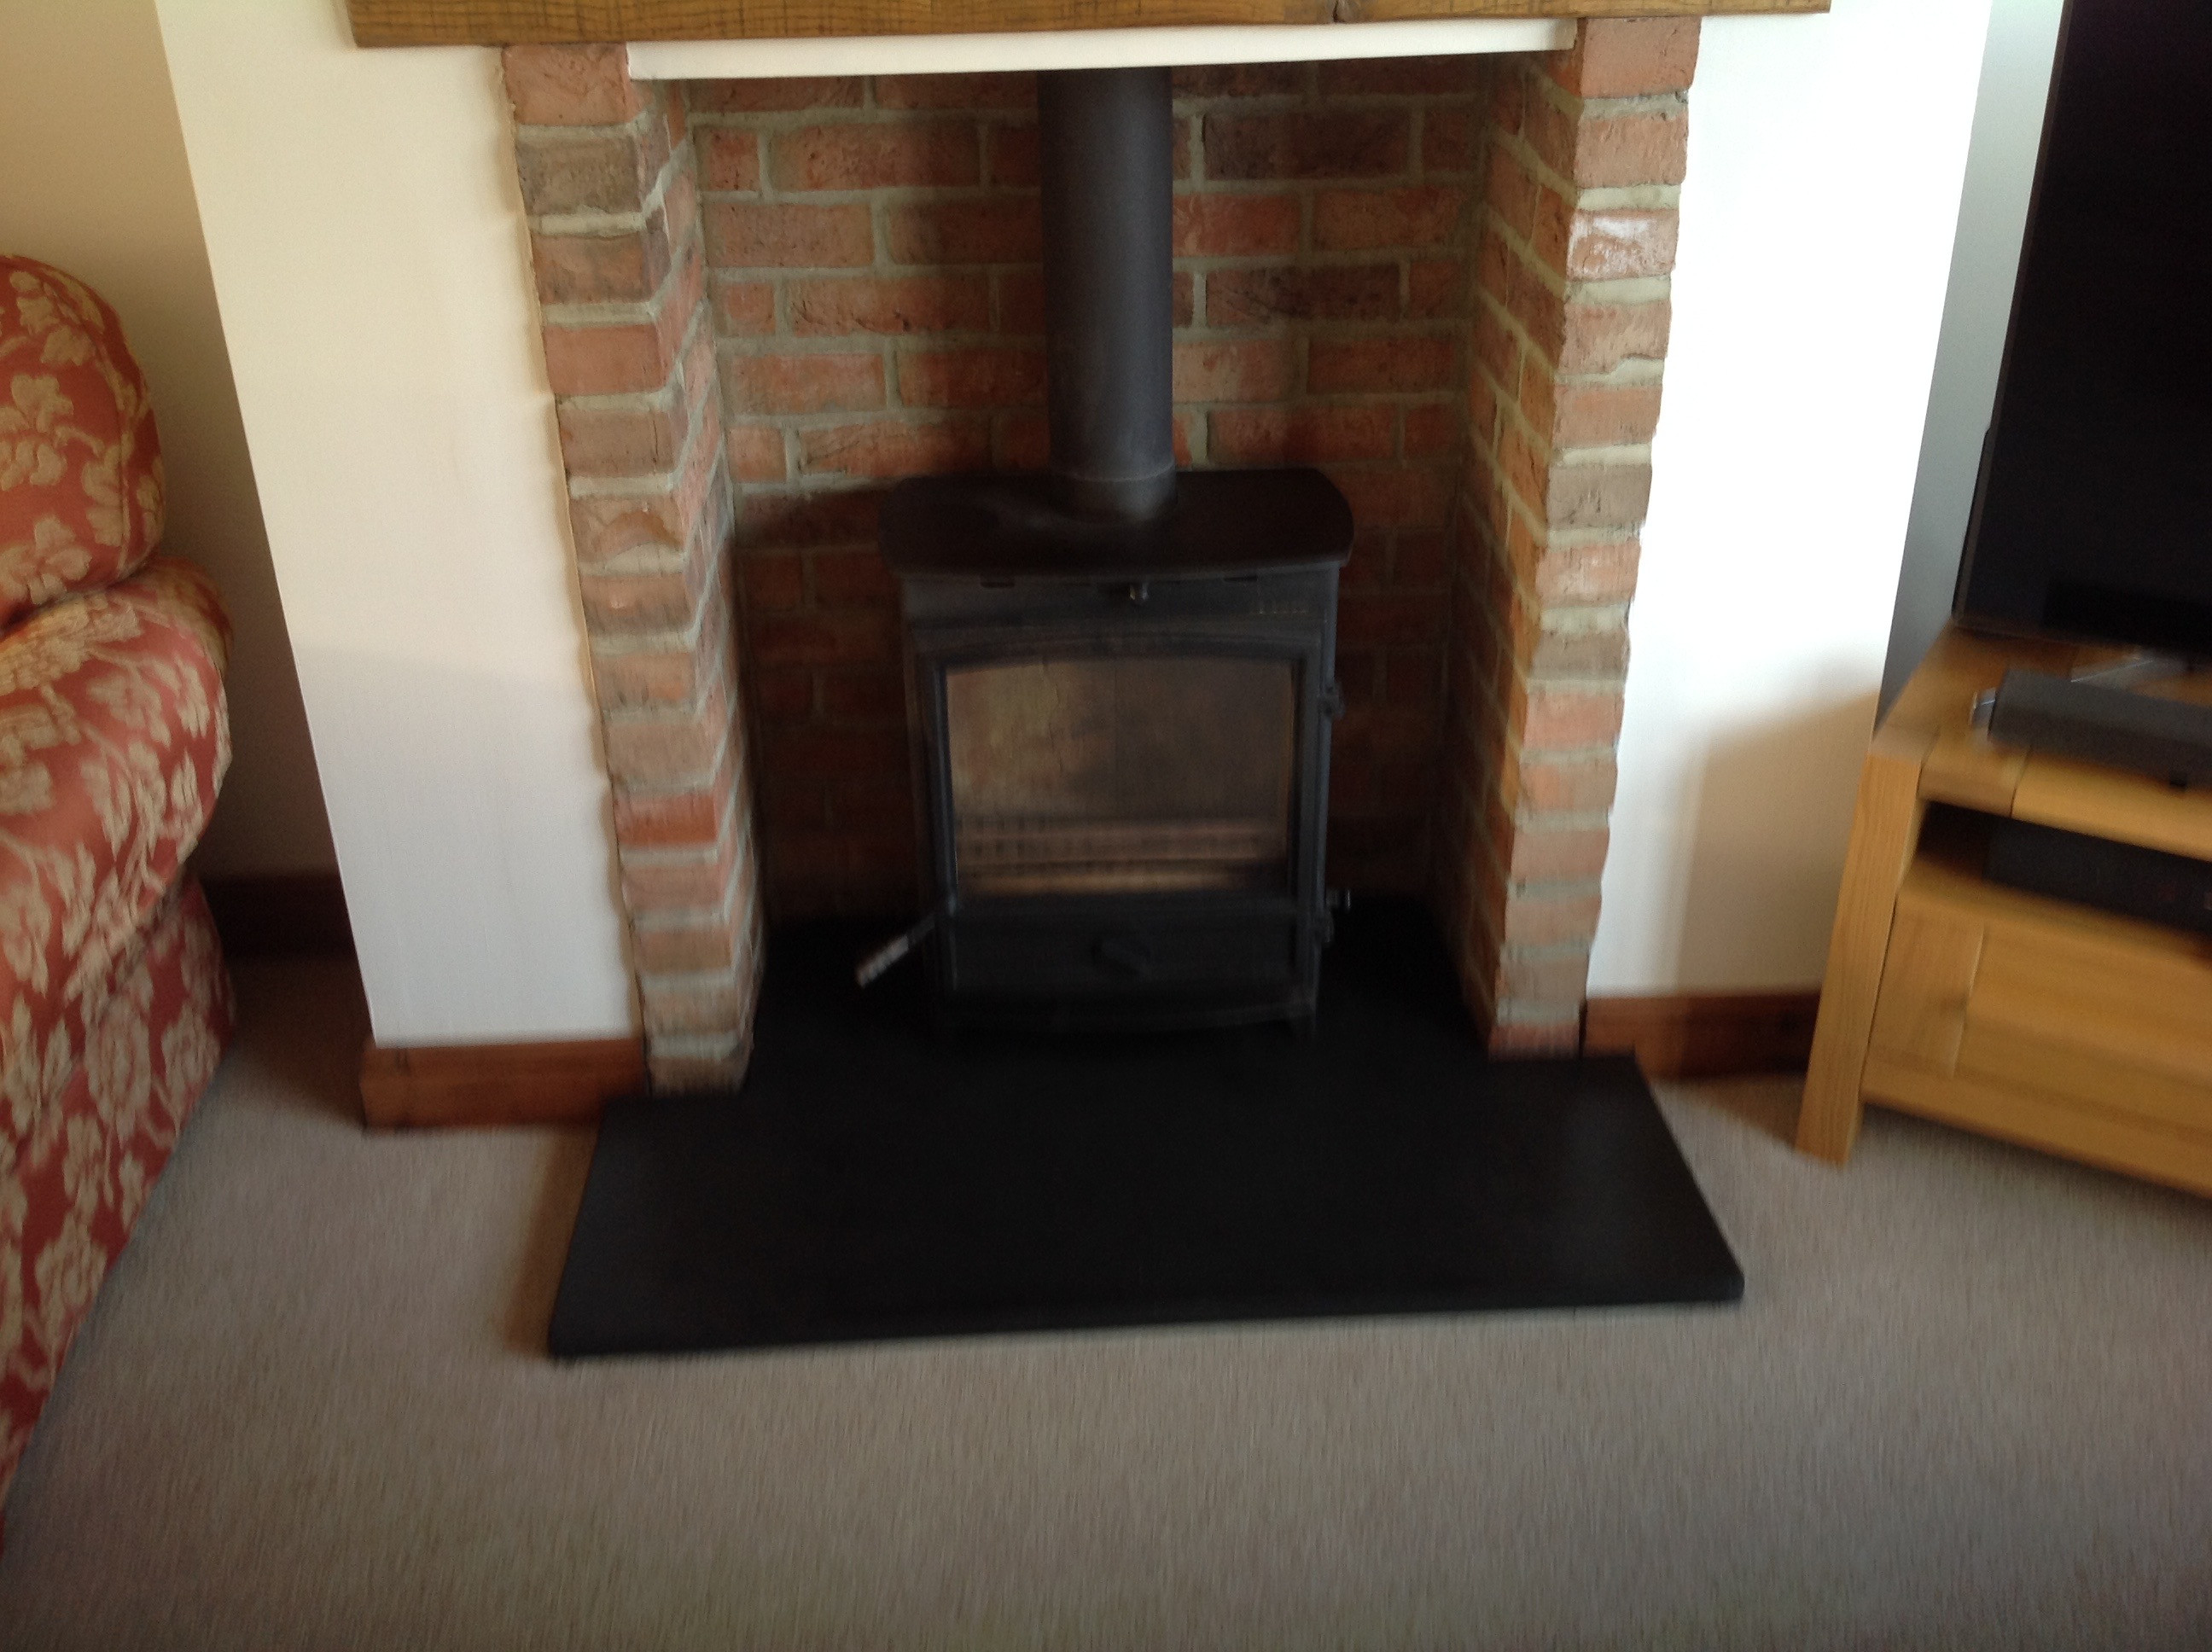 Chimney Sweep - Stove with liner